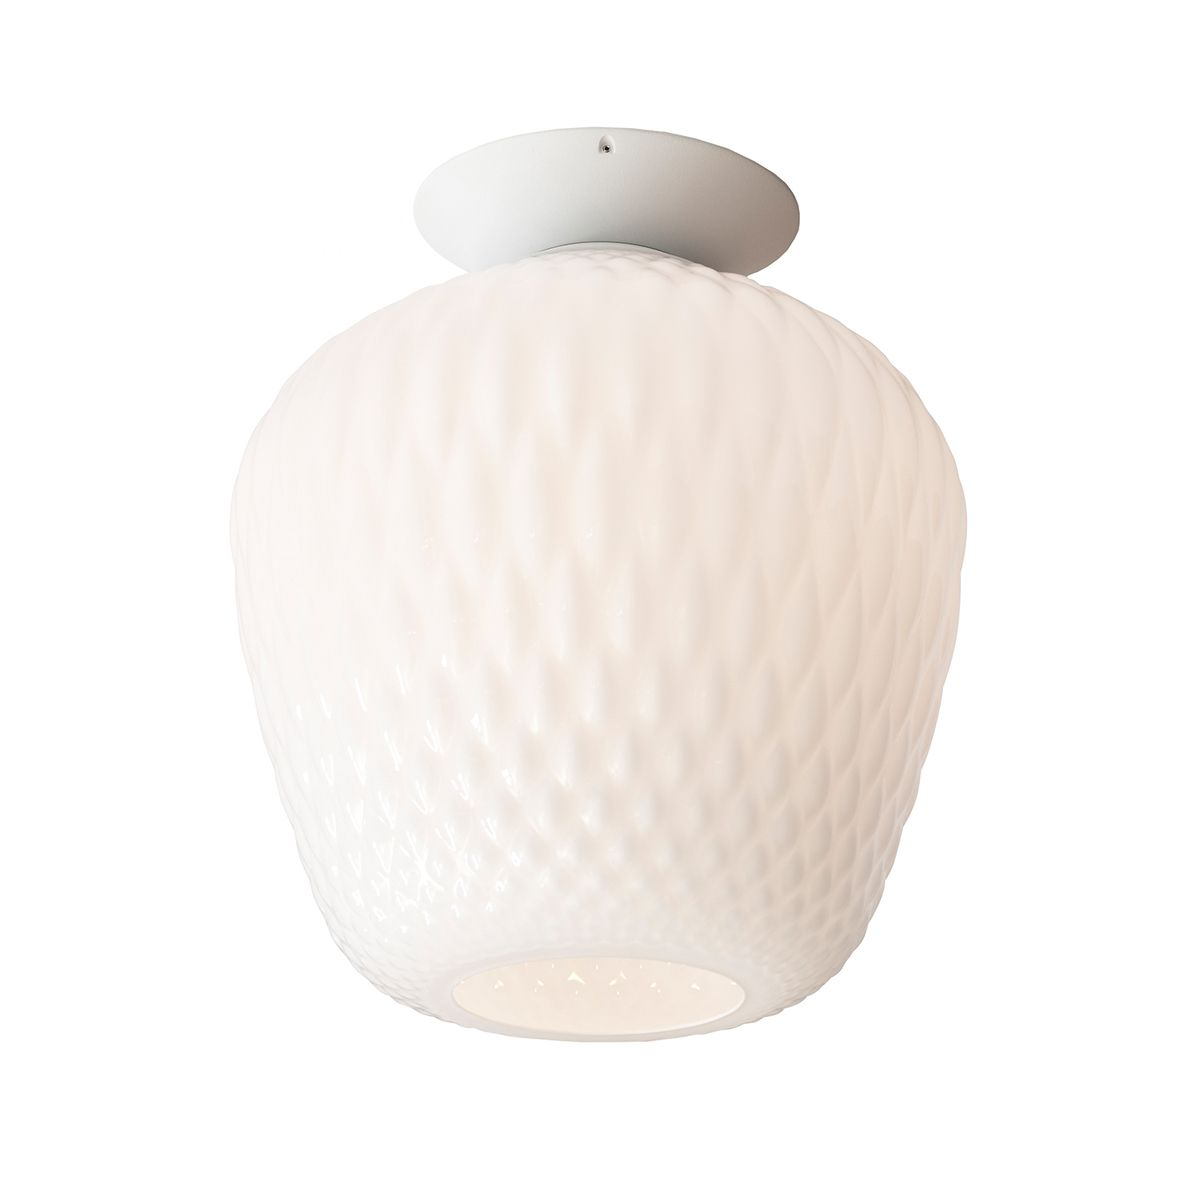 Tradition Blown Sw5 Ceiling Lamp Opal Ceiling Lamp Mouth Blown Glass Lighting Ceiling Lamp